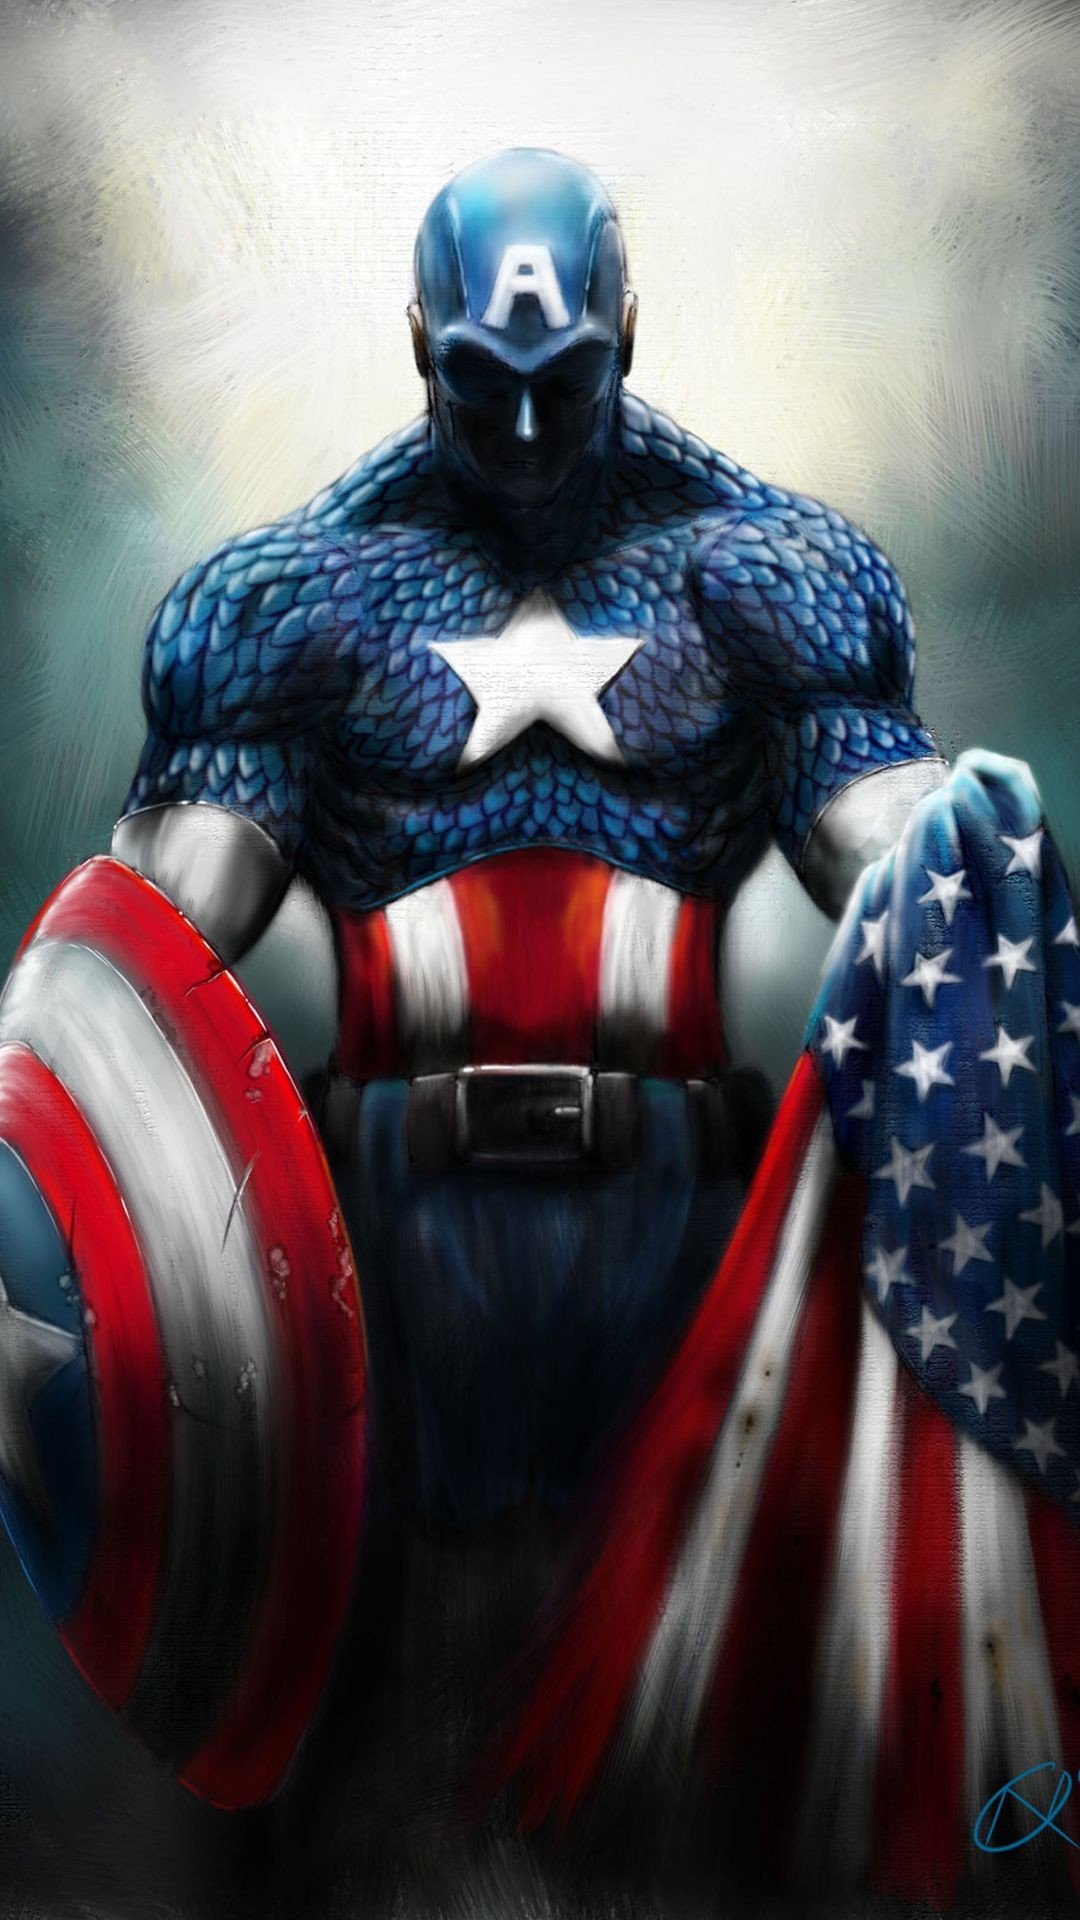 Captain america iphone 6 wallpaper 85 images - Captain america hd mobile wallpaper ...